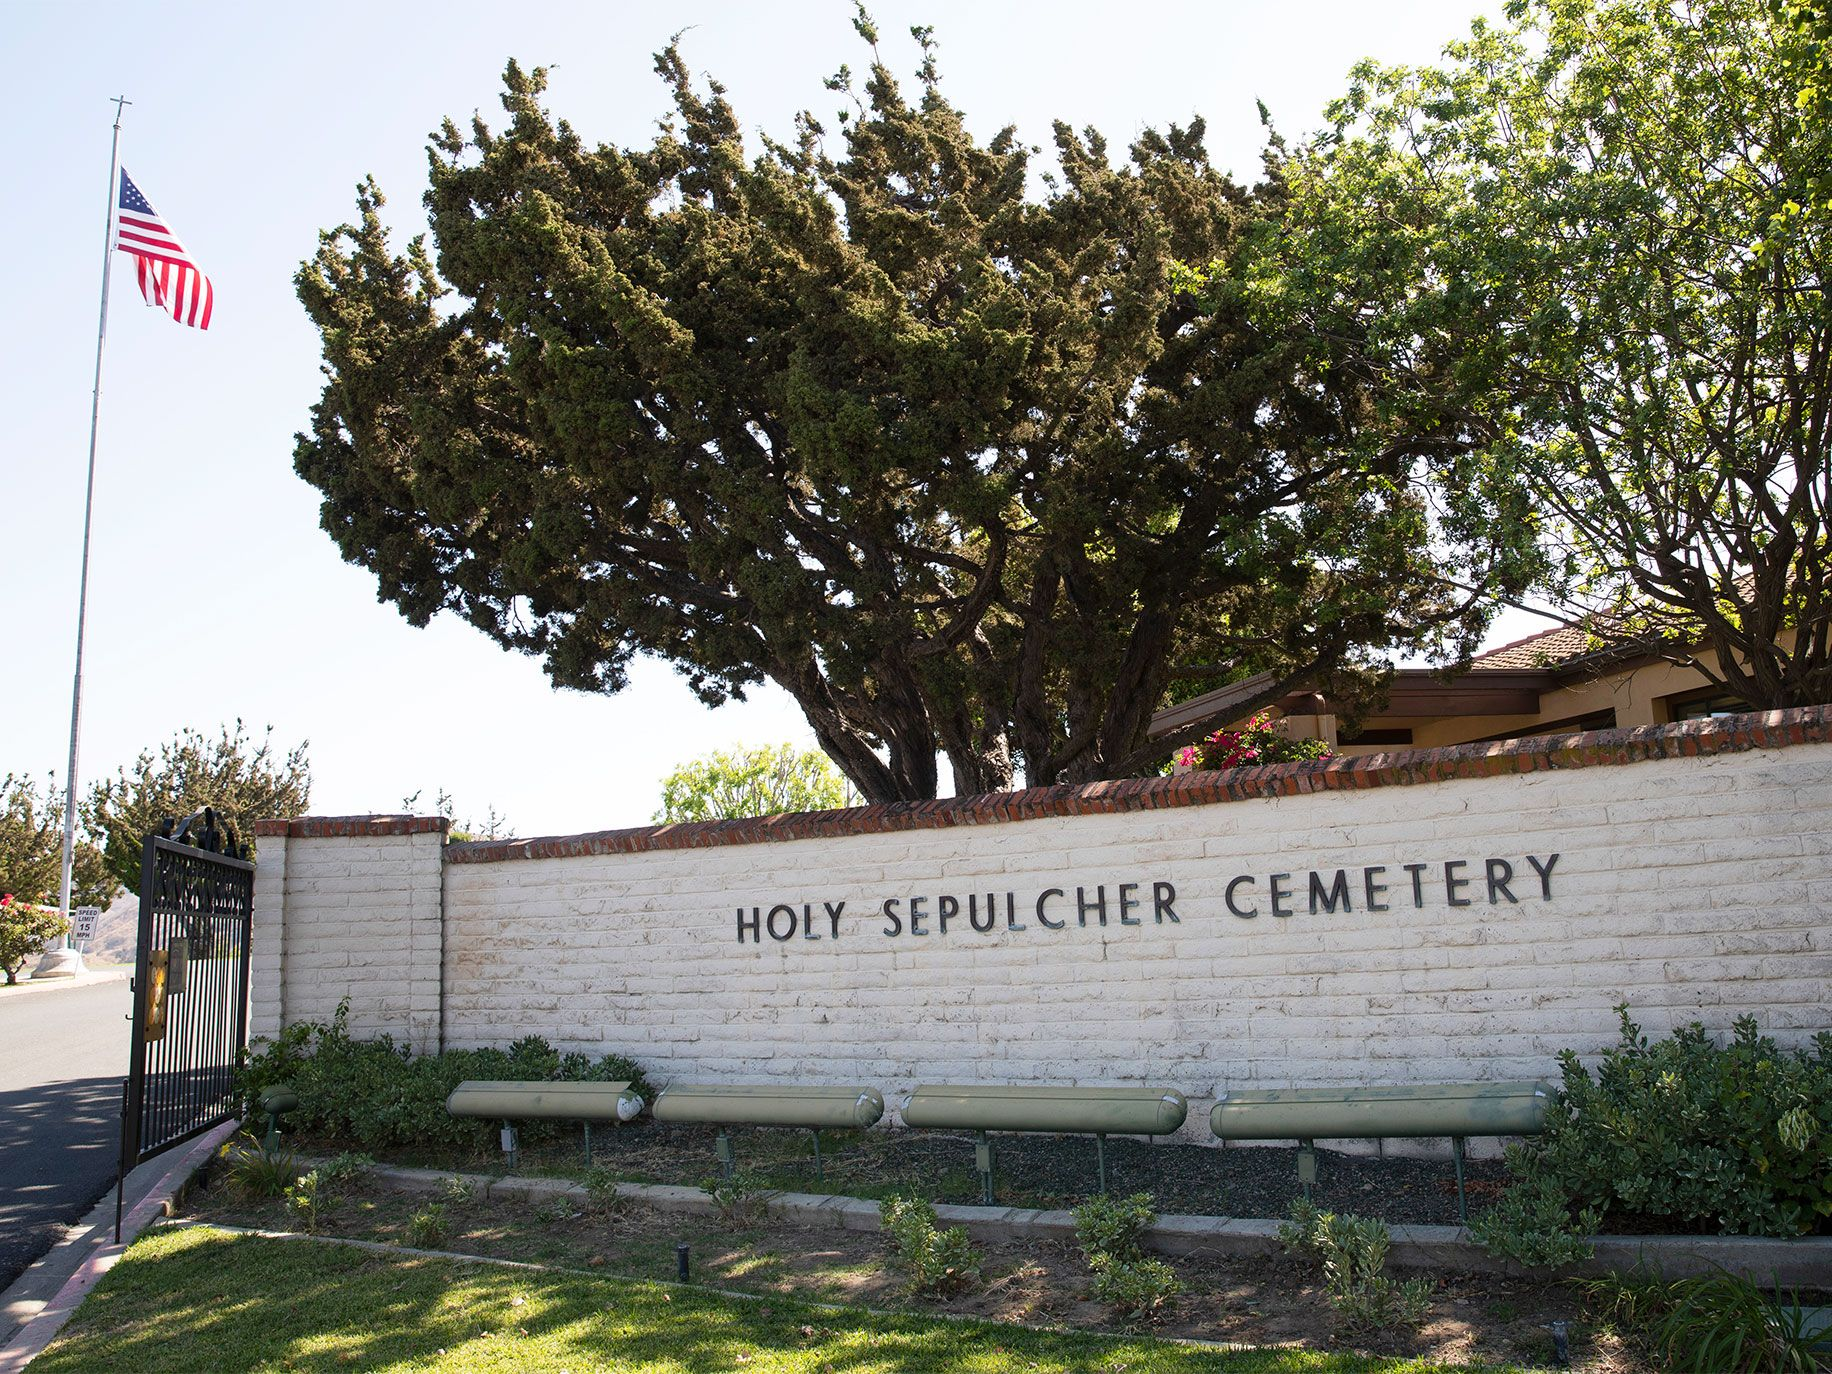 Juan Peña Diaz was buried more than 65 years ago by his brother in an unmarked site at Holy Sepulcher Cemetery in Orange, California.